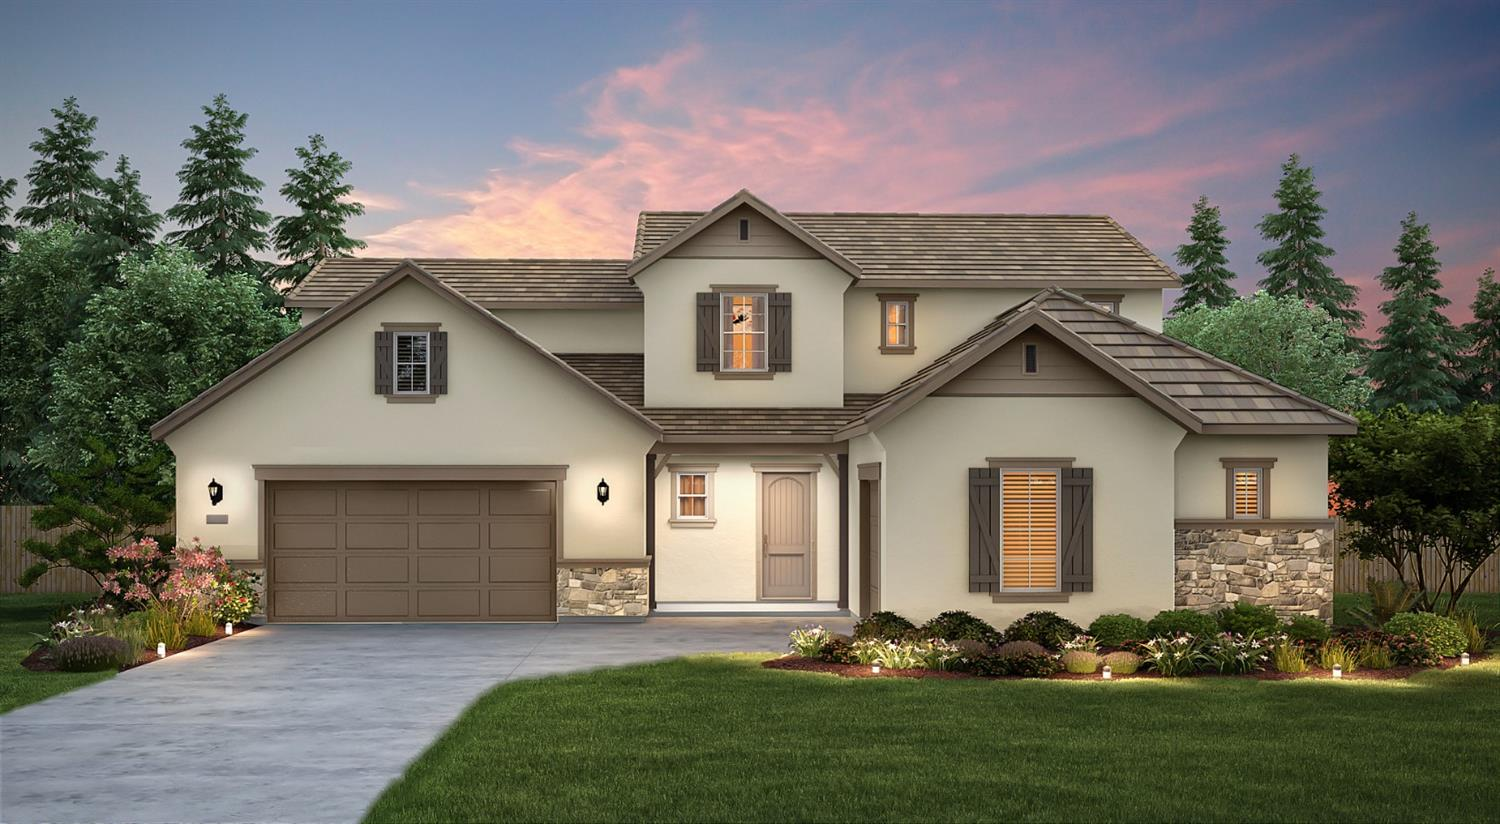 Bella Palma in Kerman.  This beautiful new construction Lexington floor plan offers a spacious kitchen featuring granite, maple cabinets in a truffle finish, stainless appliances, center island, pantry, formal dining room, large great room, and den.  The spacious master suite is downstairs and offers his and hers walk in closets, dual sinks with granite vanity, soaking tub, and large walk in shower. Upstairs offers 4 bedrooms and a loft; 2 bedrooms share a Jack and Jill bathroom, and 1 bedroom is a suite. The loft is perfect for an extra study or game area.  The large covered patio is perfect for entertaining or relaxing after a long days work.